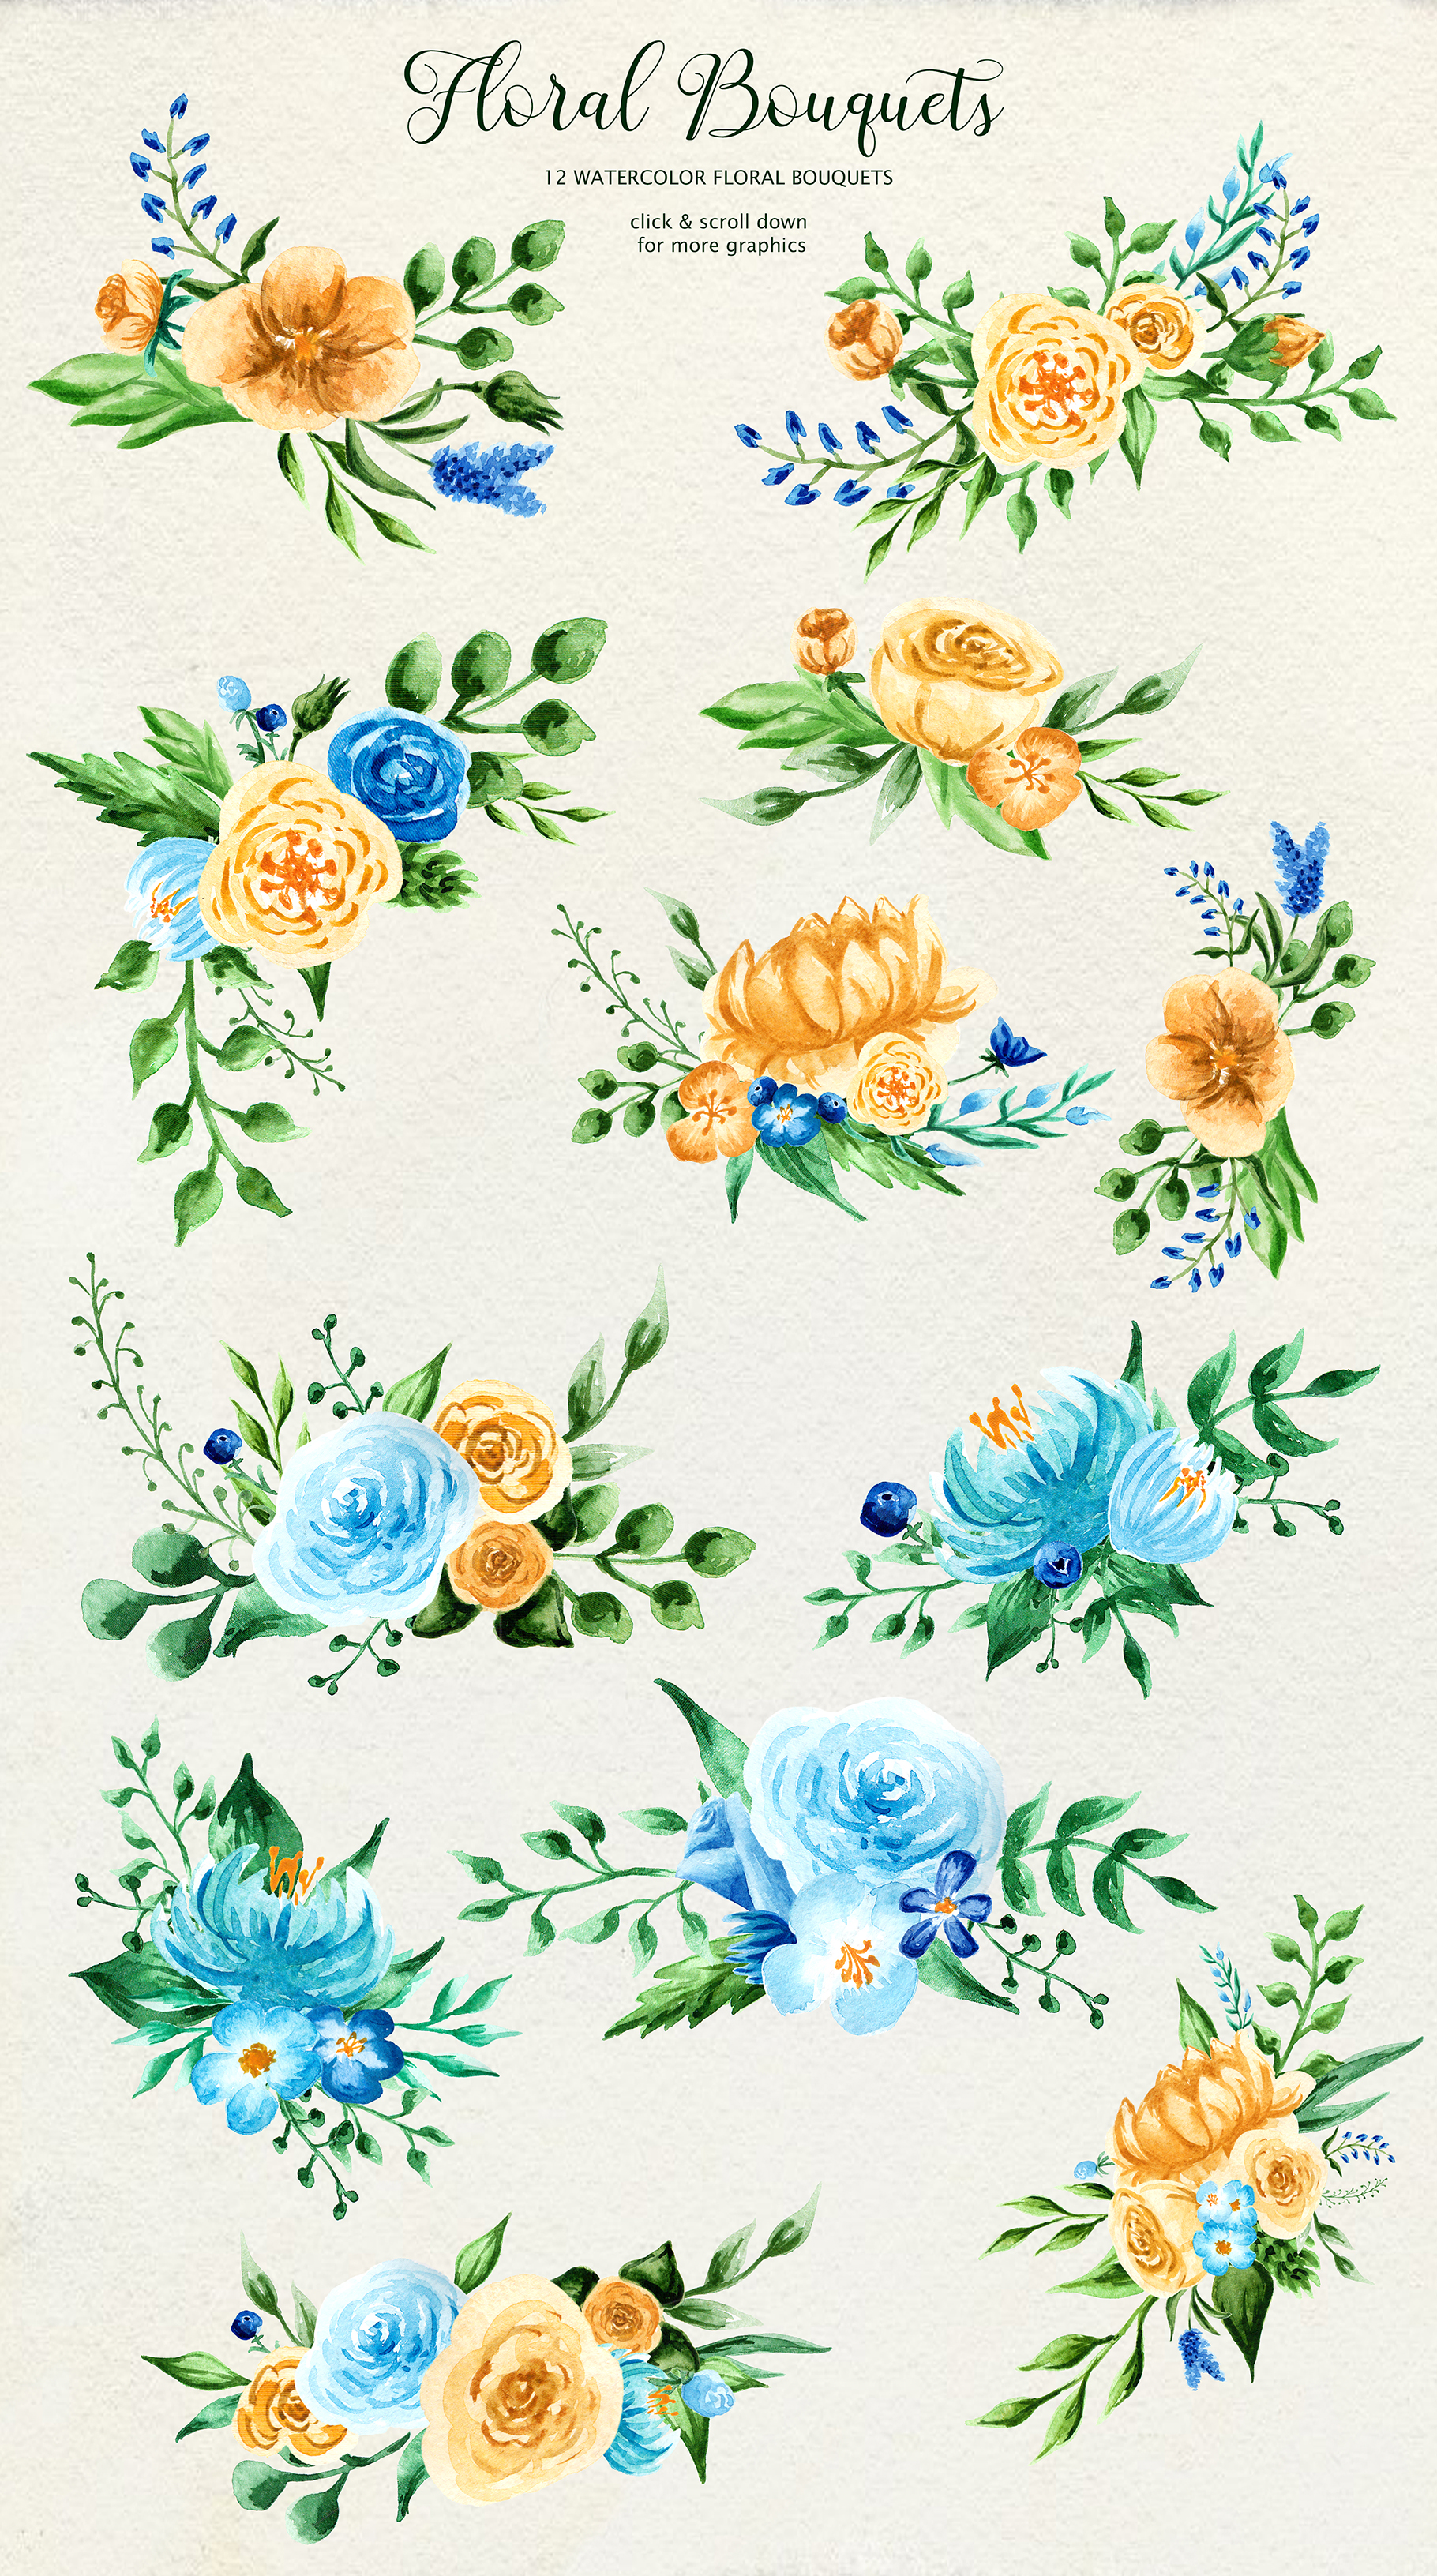 Birth of Watercolor Flower Set Graphic By tregubova.jul Image 3